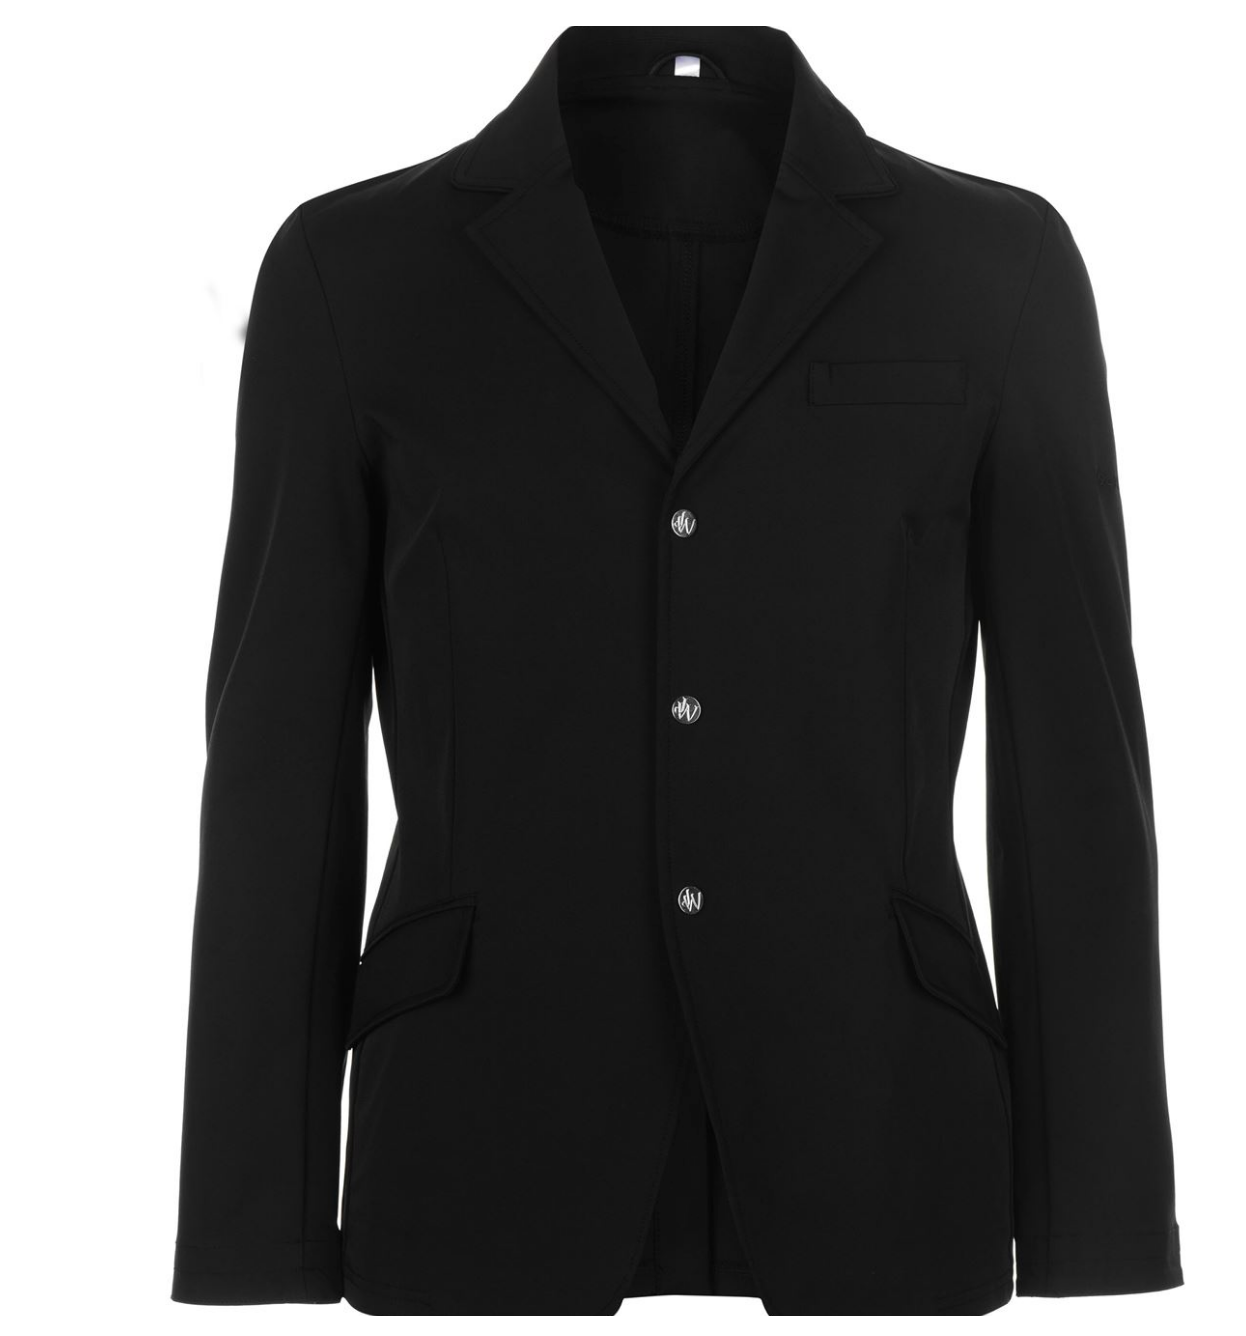 John whitaker horseback riding competition jacket is going to be great for all horseback riders. This show jacket is perfect for the stylish equestrian, in and out of the ring you will look your best.